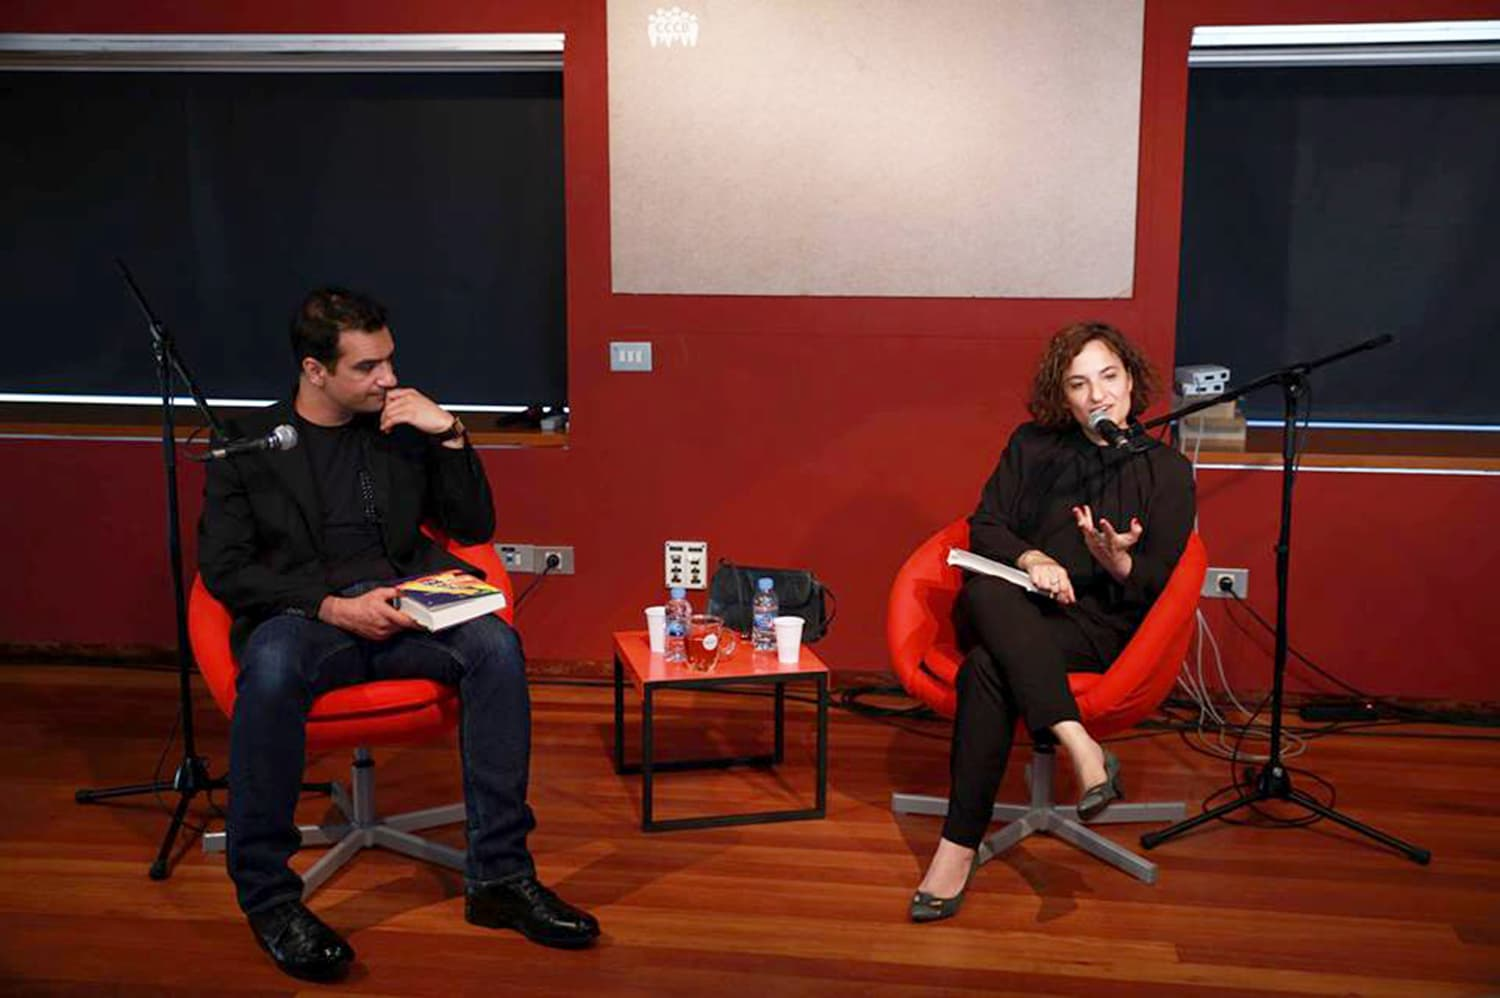 Nadeem Aslam presents the Spanish translation of The Blind Man's Garden (El Jardín del Hombre Ciego) at the Centre de Cultura Contemporània de Barcelona (interviewed by Ana Ballesteros). -Photo by author